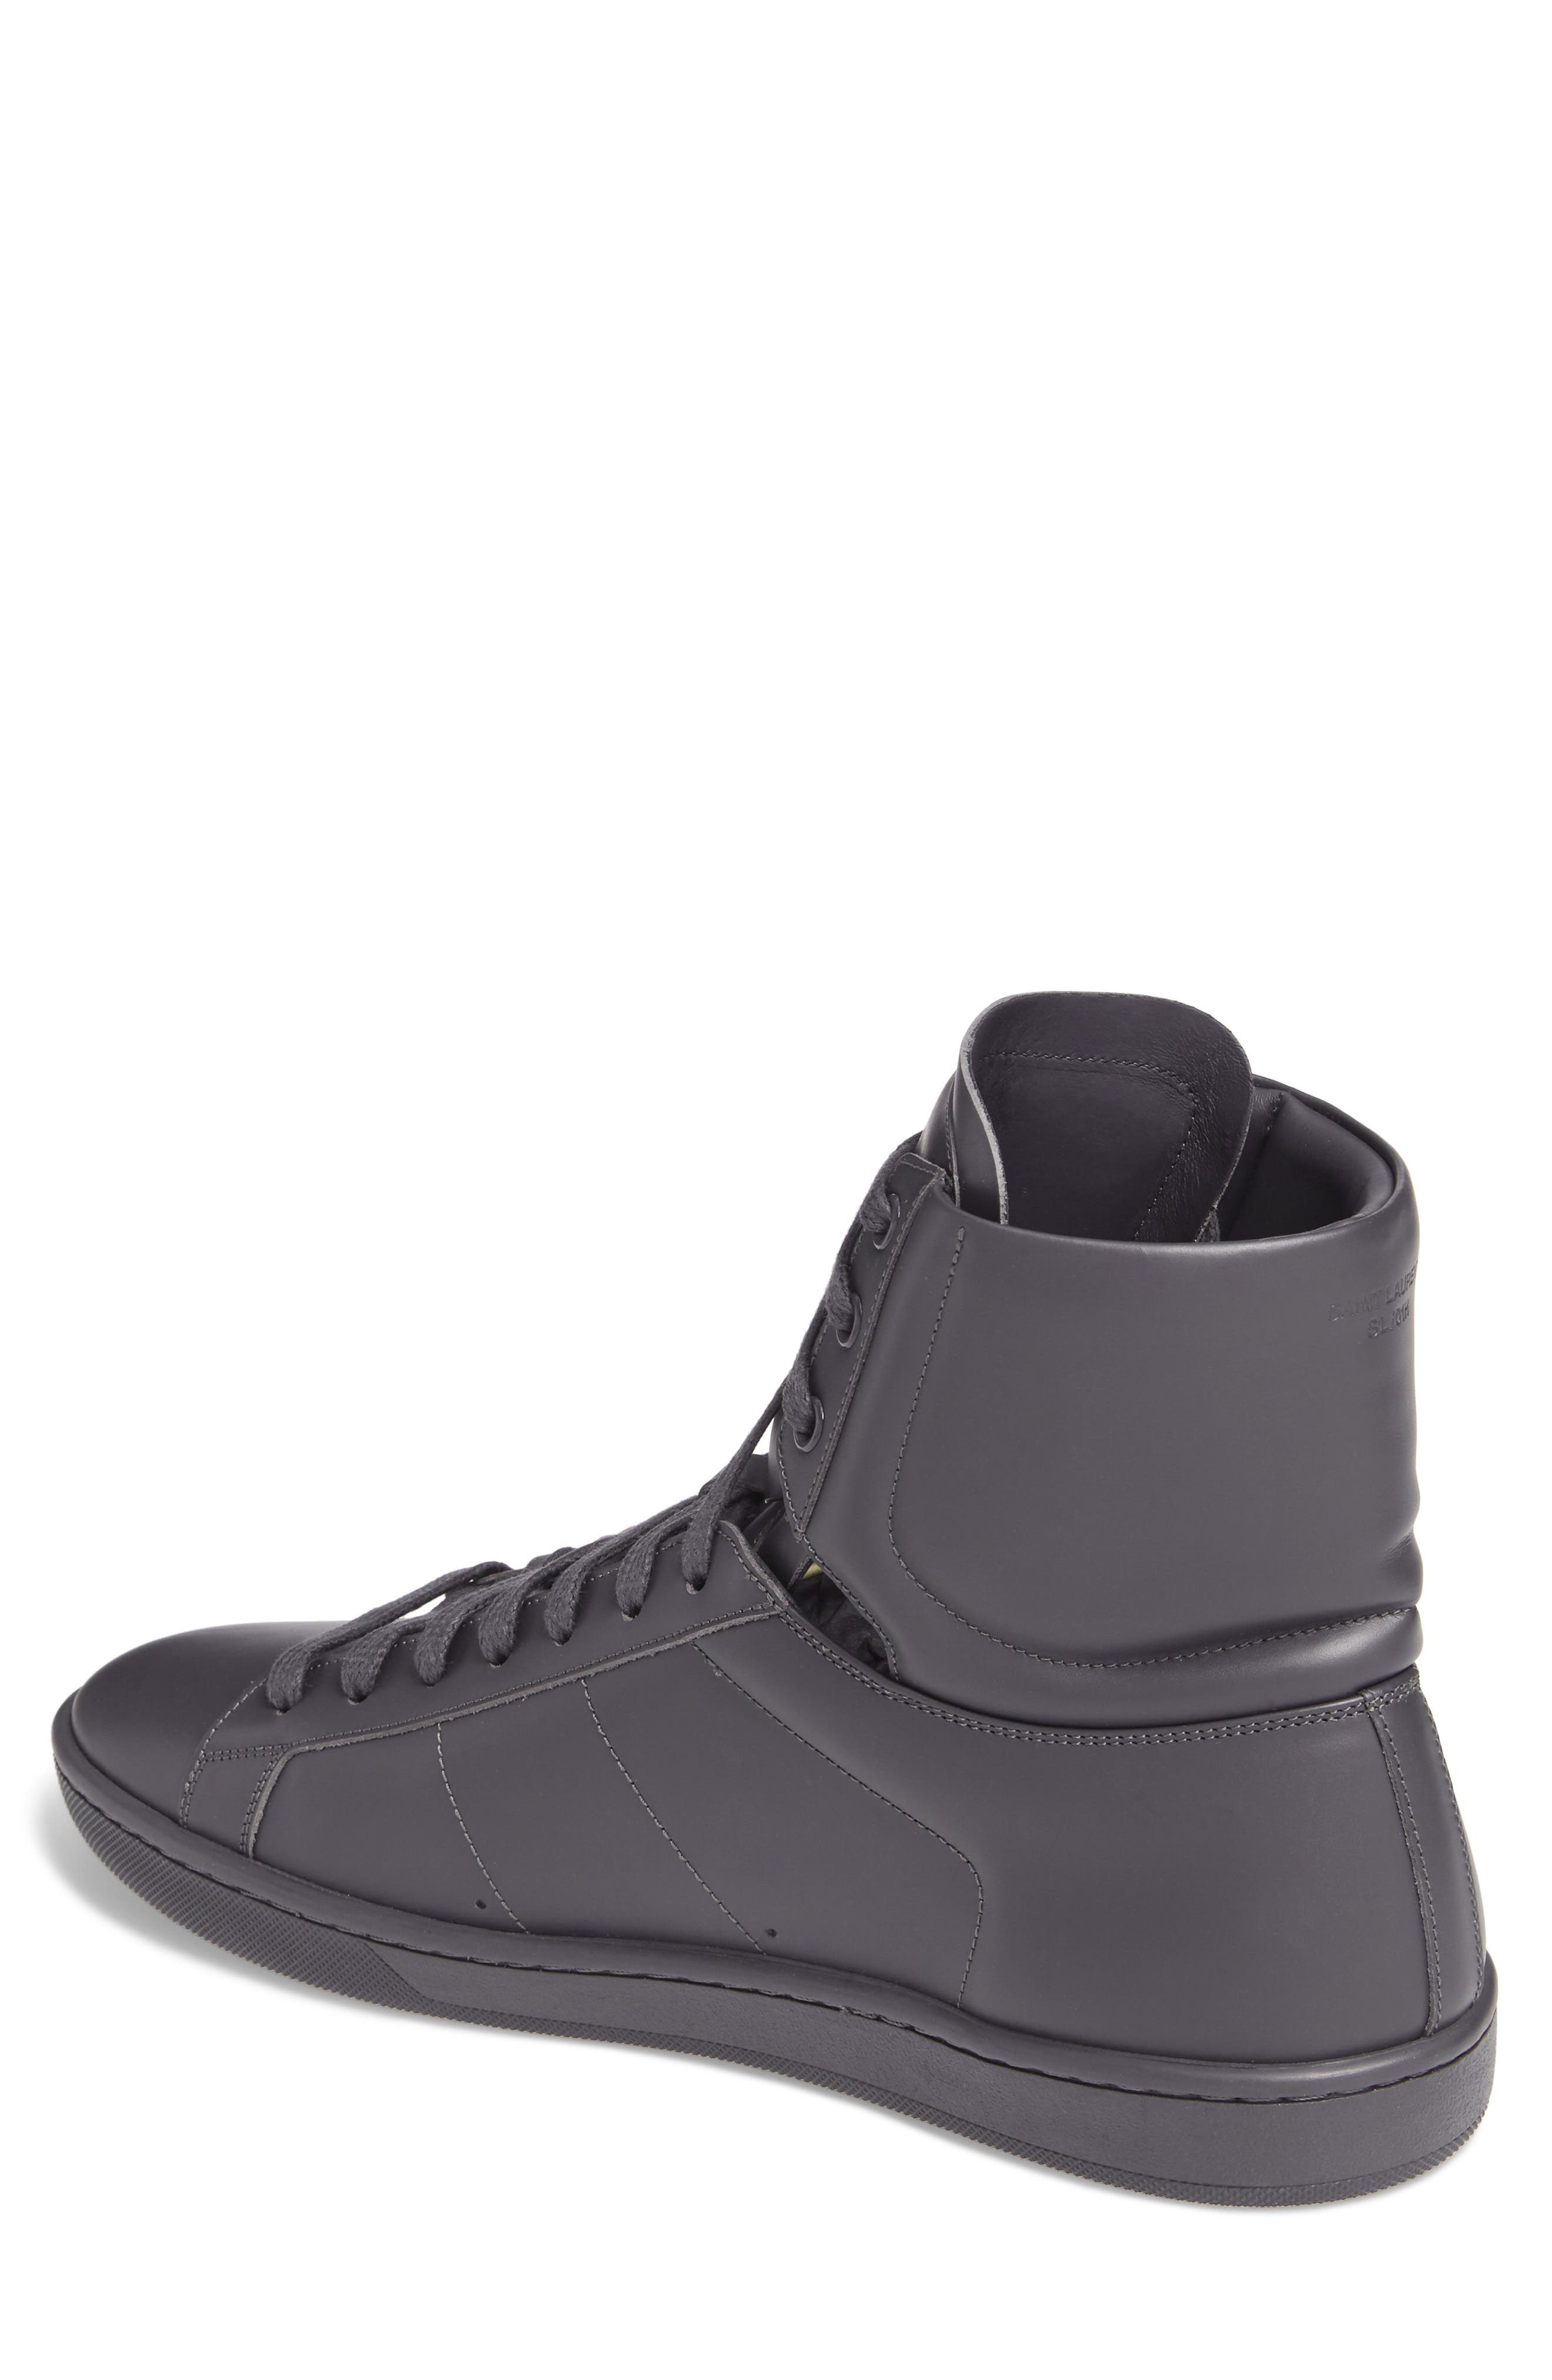 Signature Court Classic Sneaker,                             Alternate thumbnail 2, color,                             Grey Leather